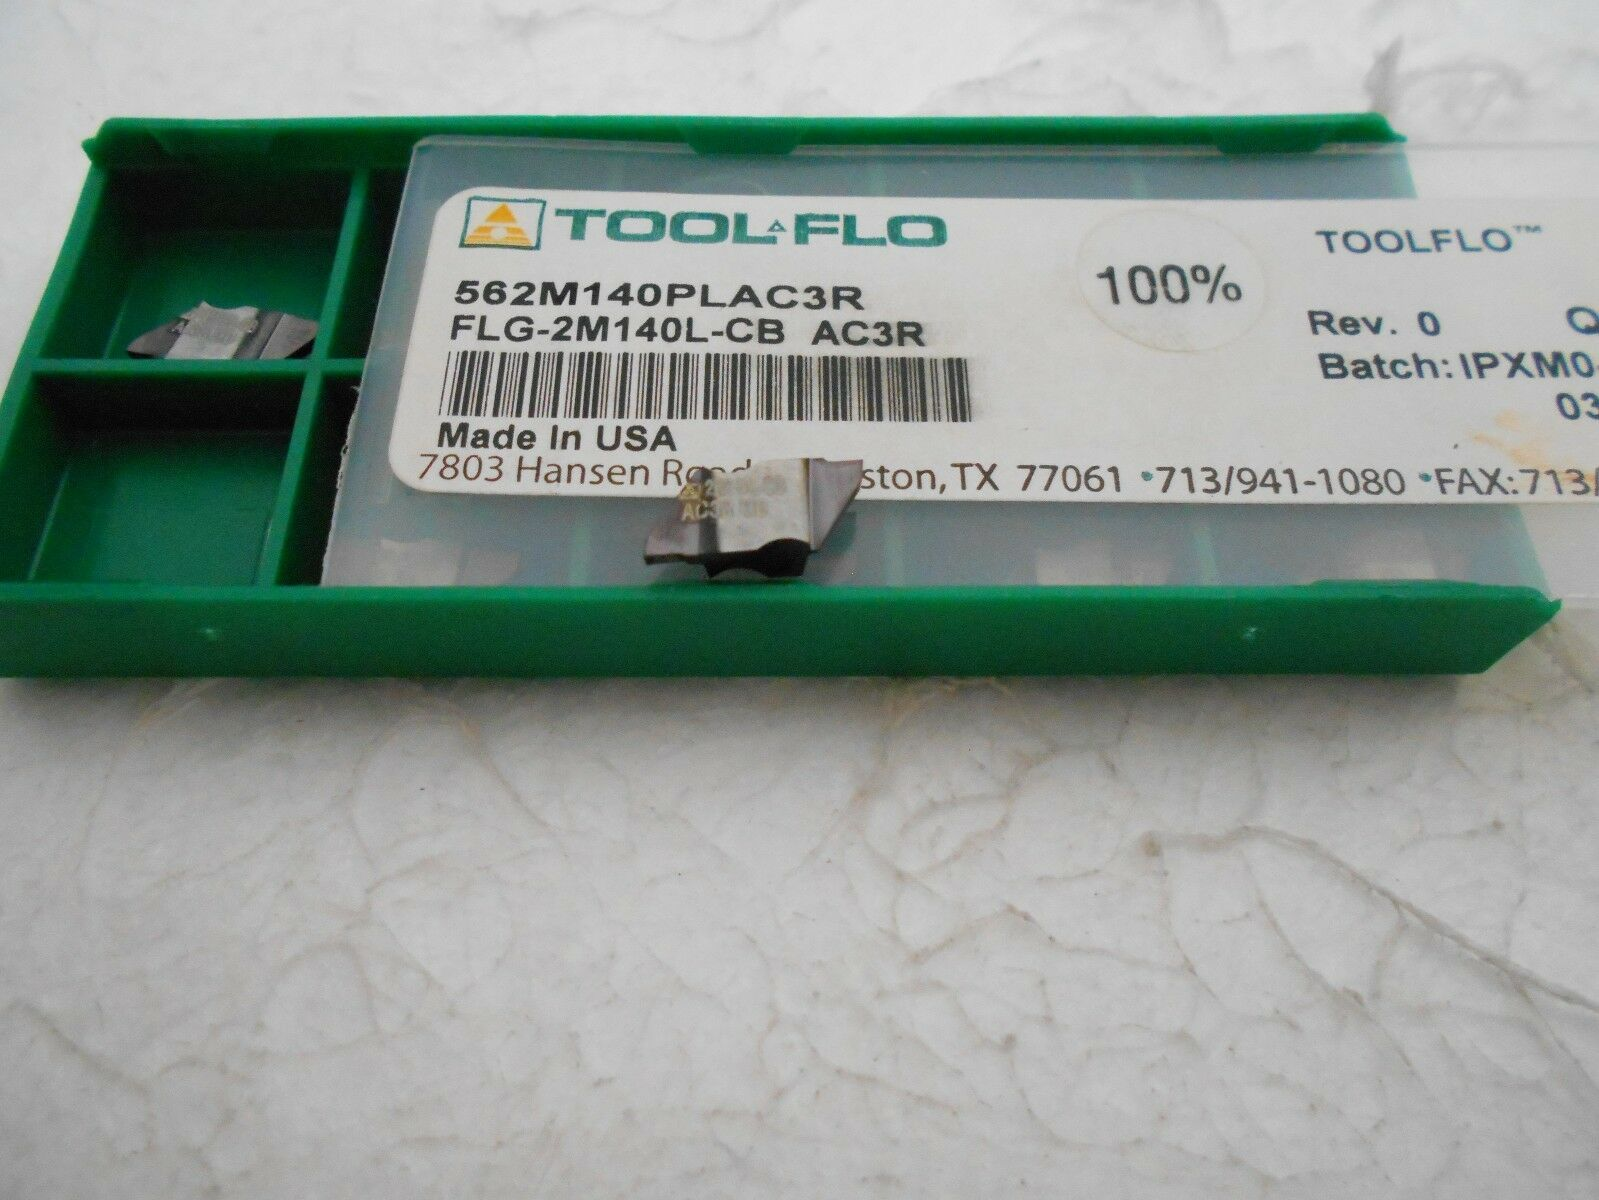 10pc ToolFlo FLG 3094LCB AC3R Top Notch Coated Carbide Grooving Inserts NG 3094